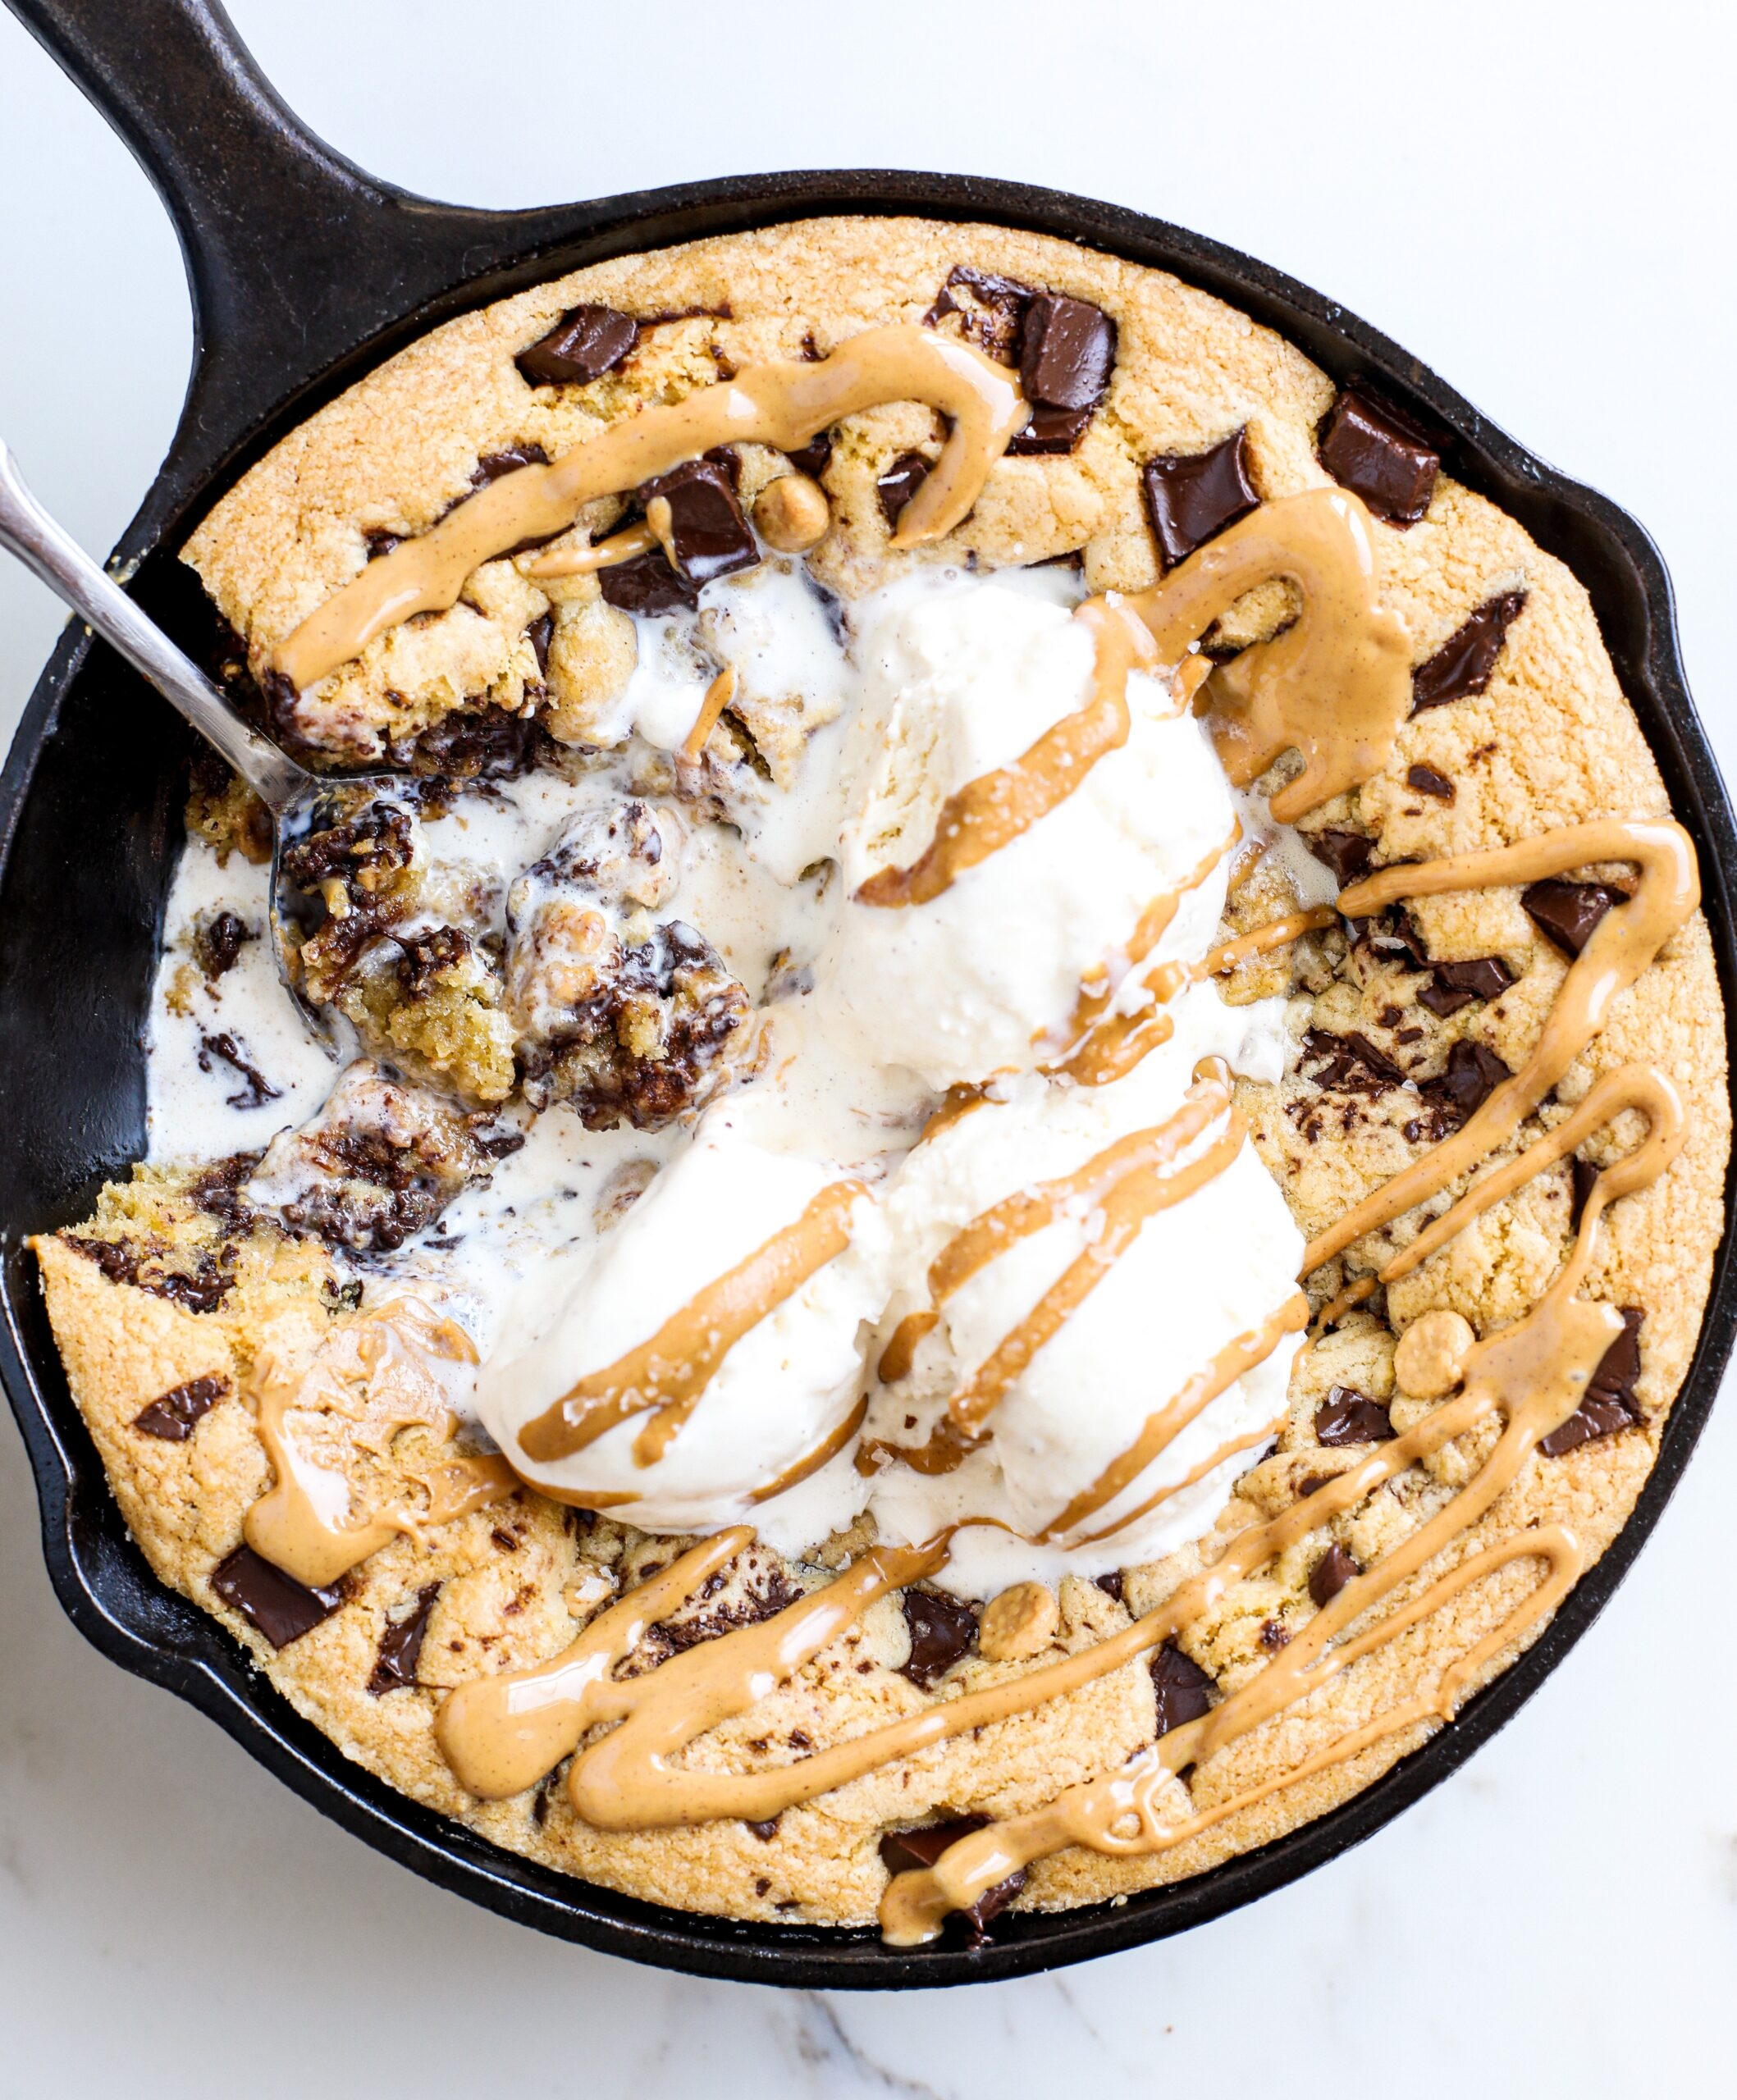 Chocolate Chip Peanut Butter Skillet Cookie